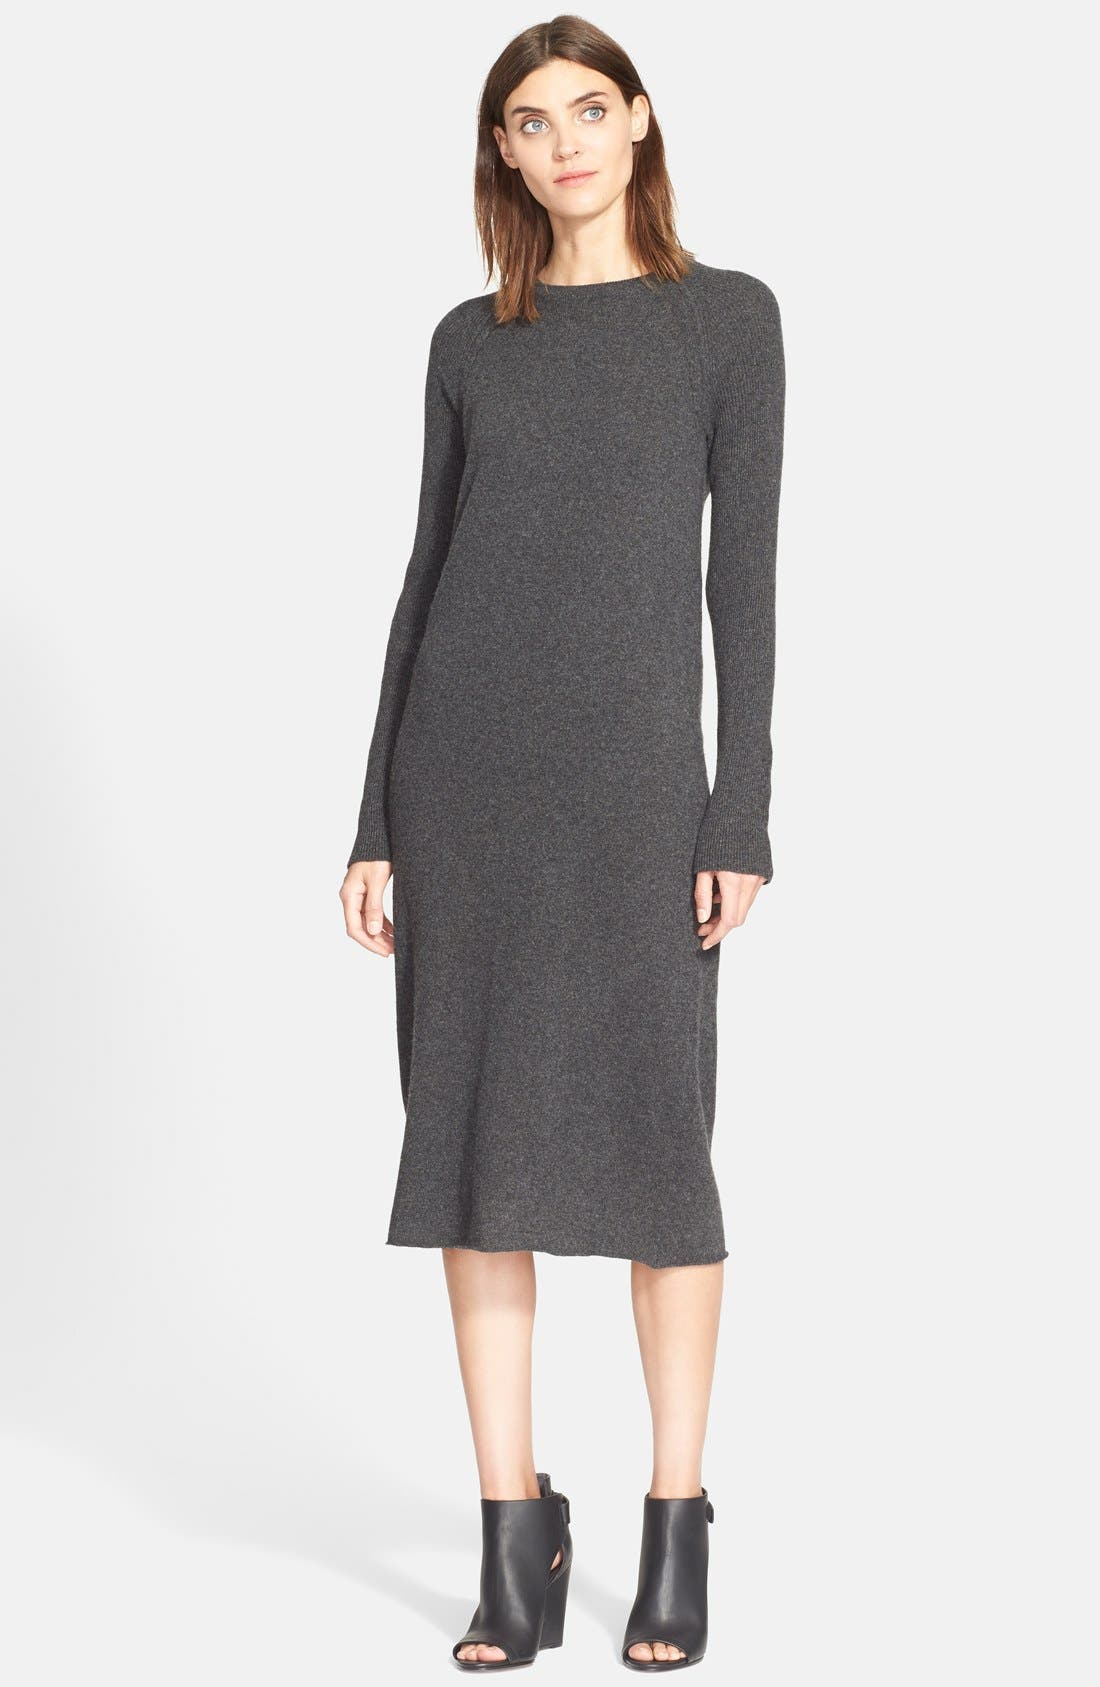 Alternate Image 1 Selected - Equipment 'Willy' Cashmere Sweater Dress